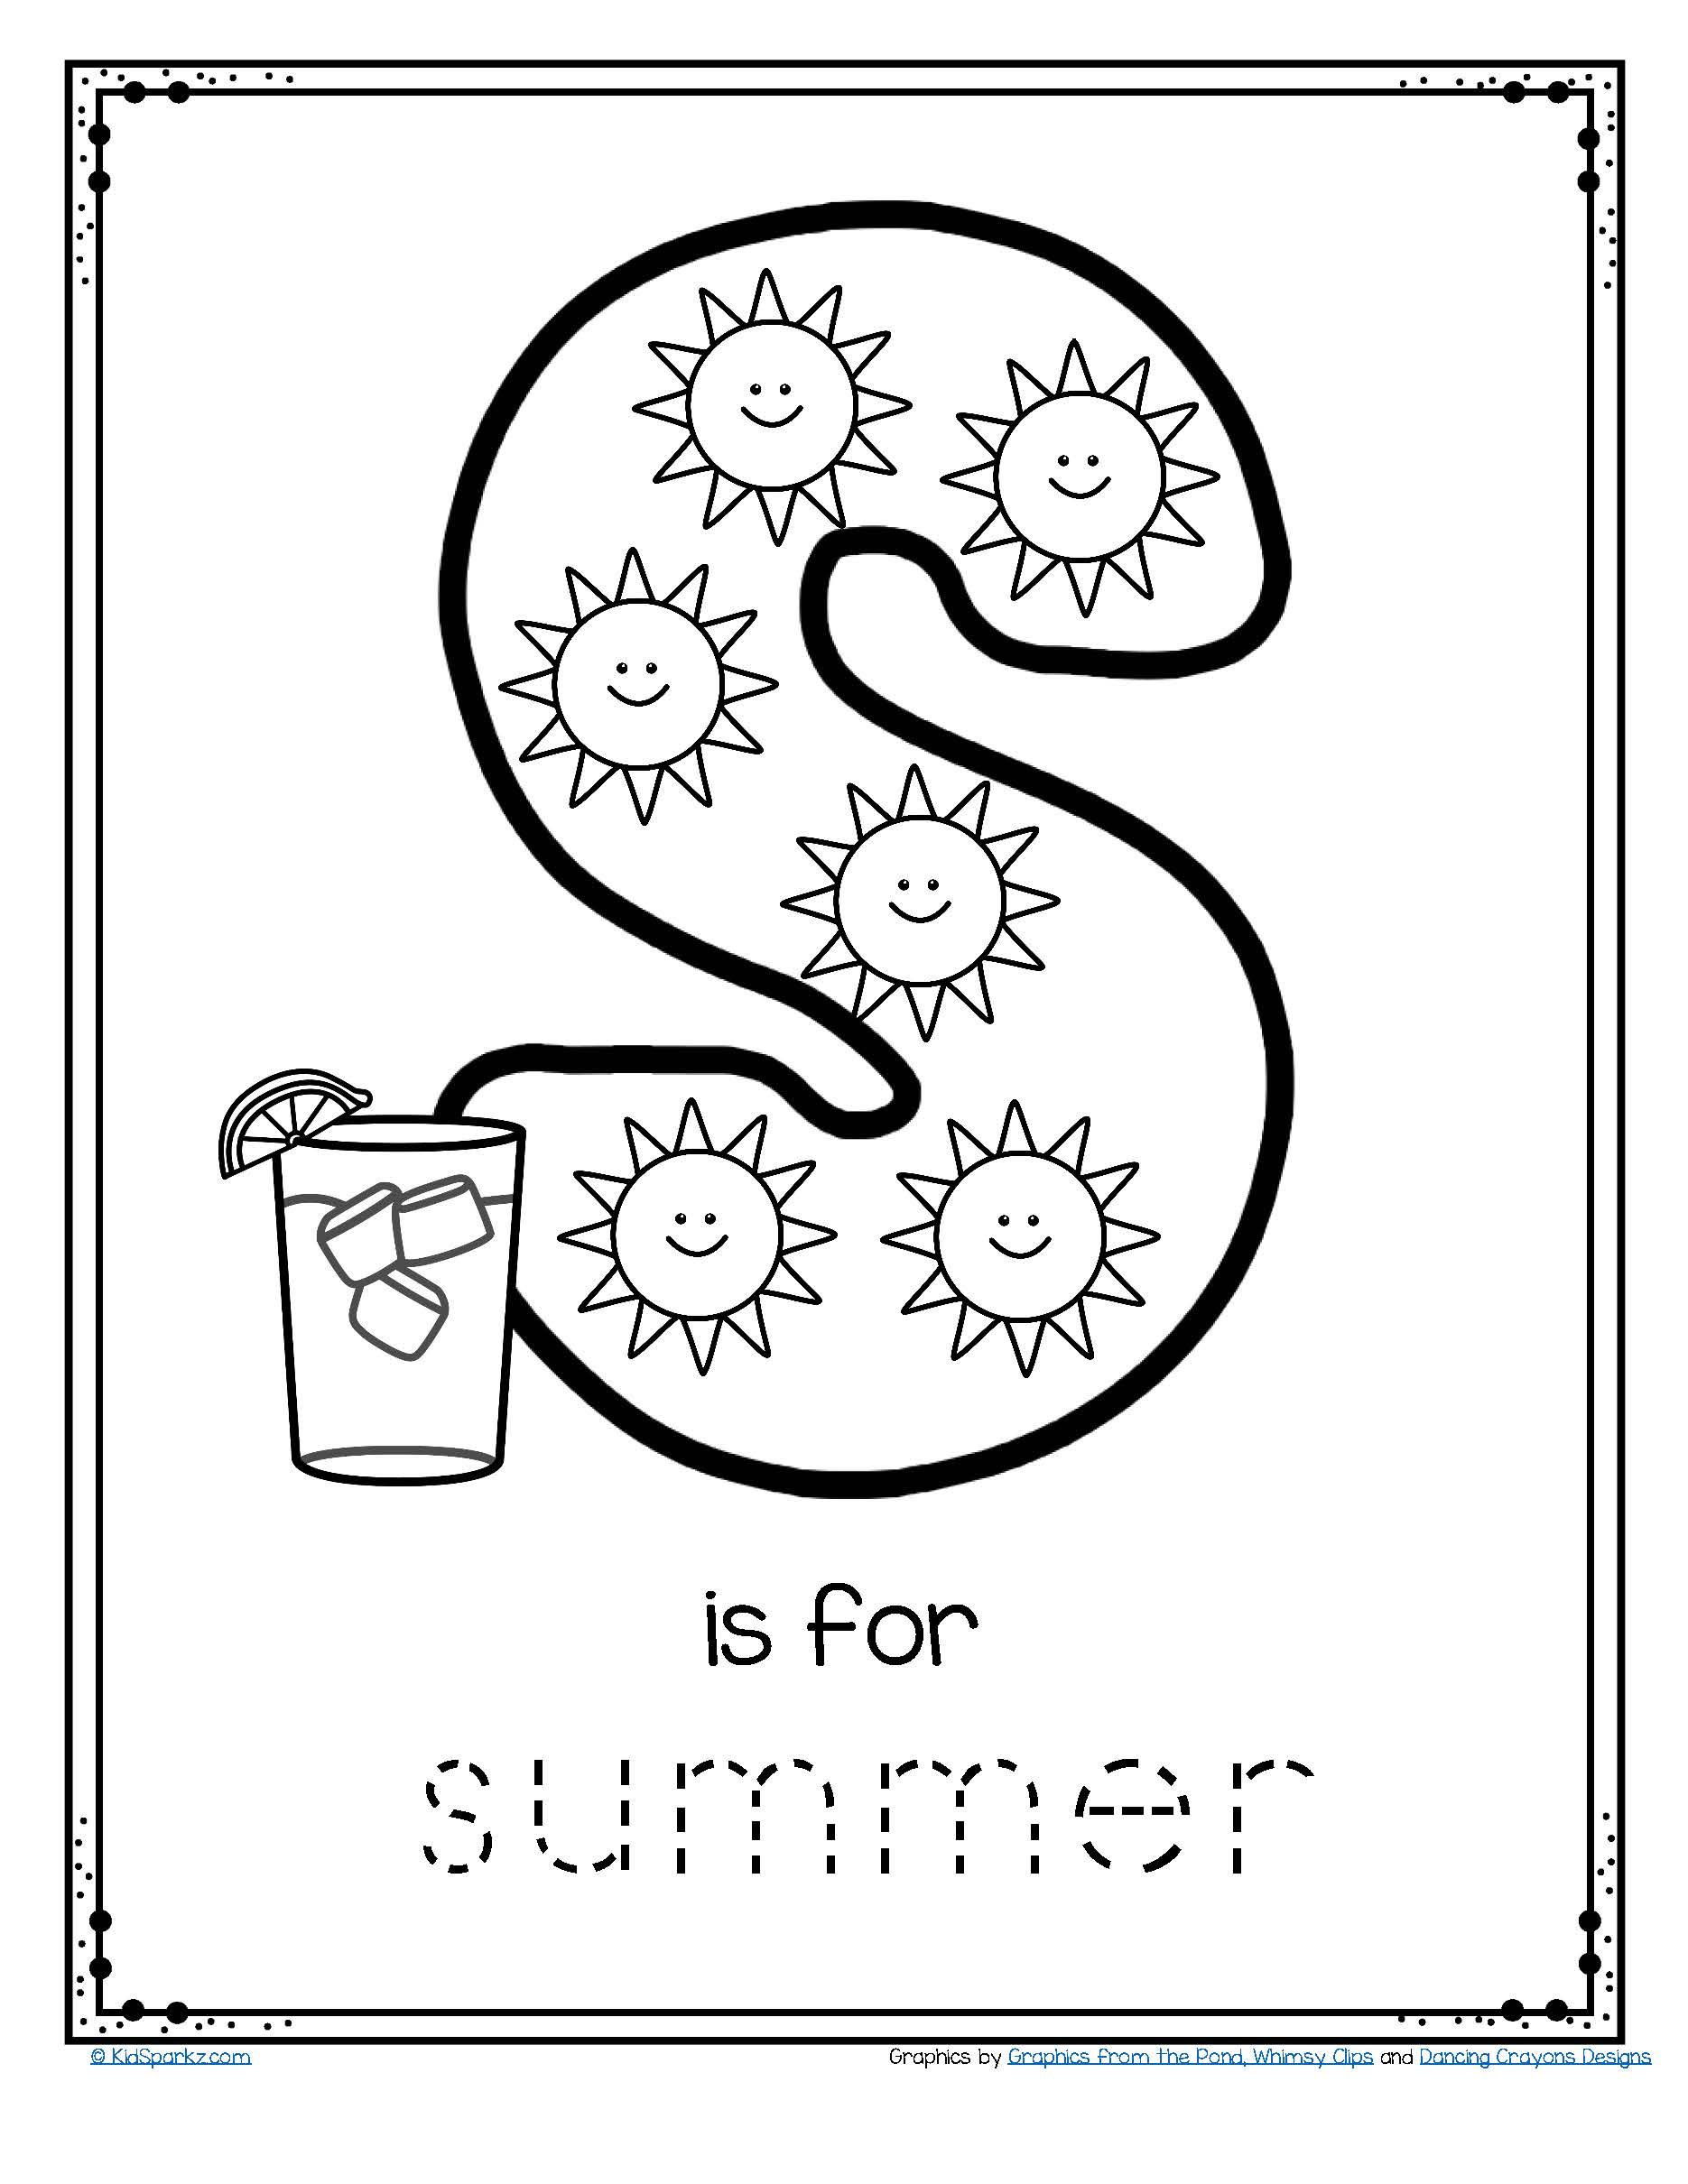 Color Blue Worksheets for Preschool Free Tracing and Coloring Printable Sunny Days Blue Skies